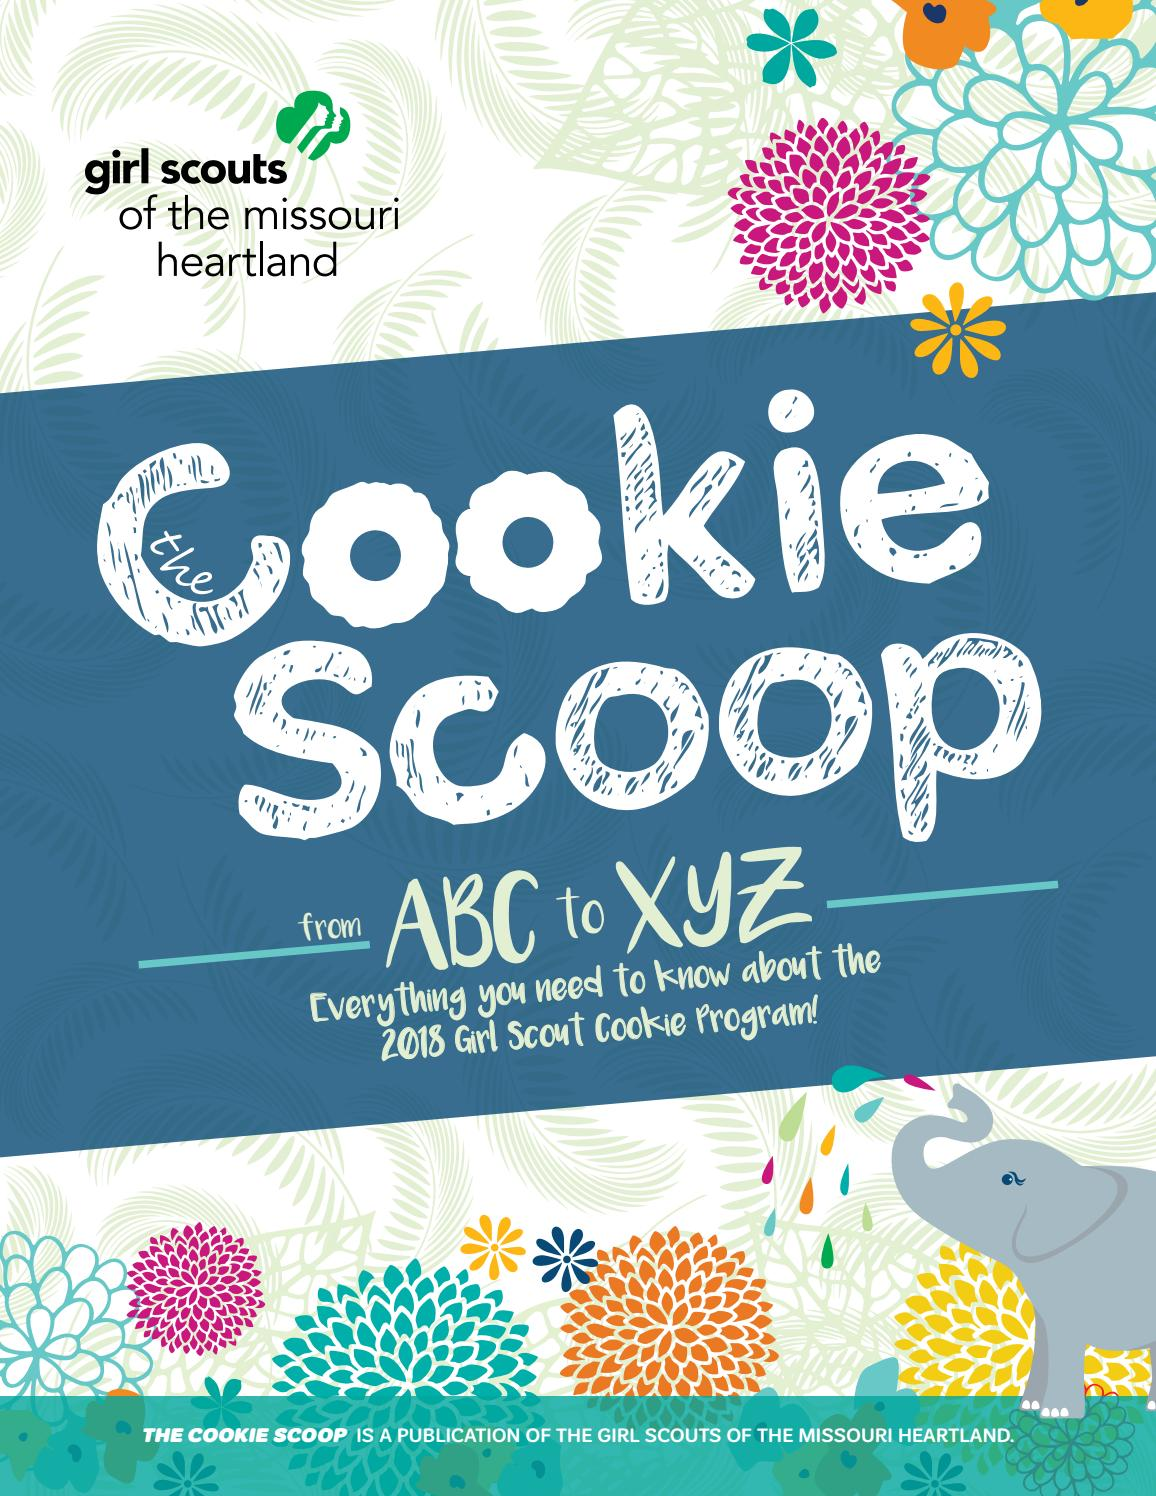 Girl scouts of the missouri heartland cookie scoop by girl scouts of the missouri heartland issuu